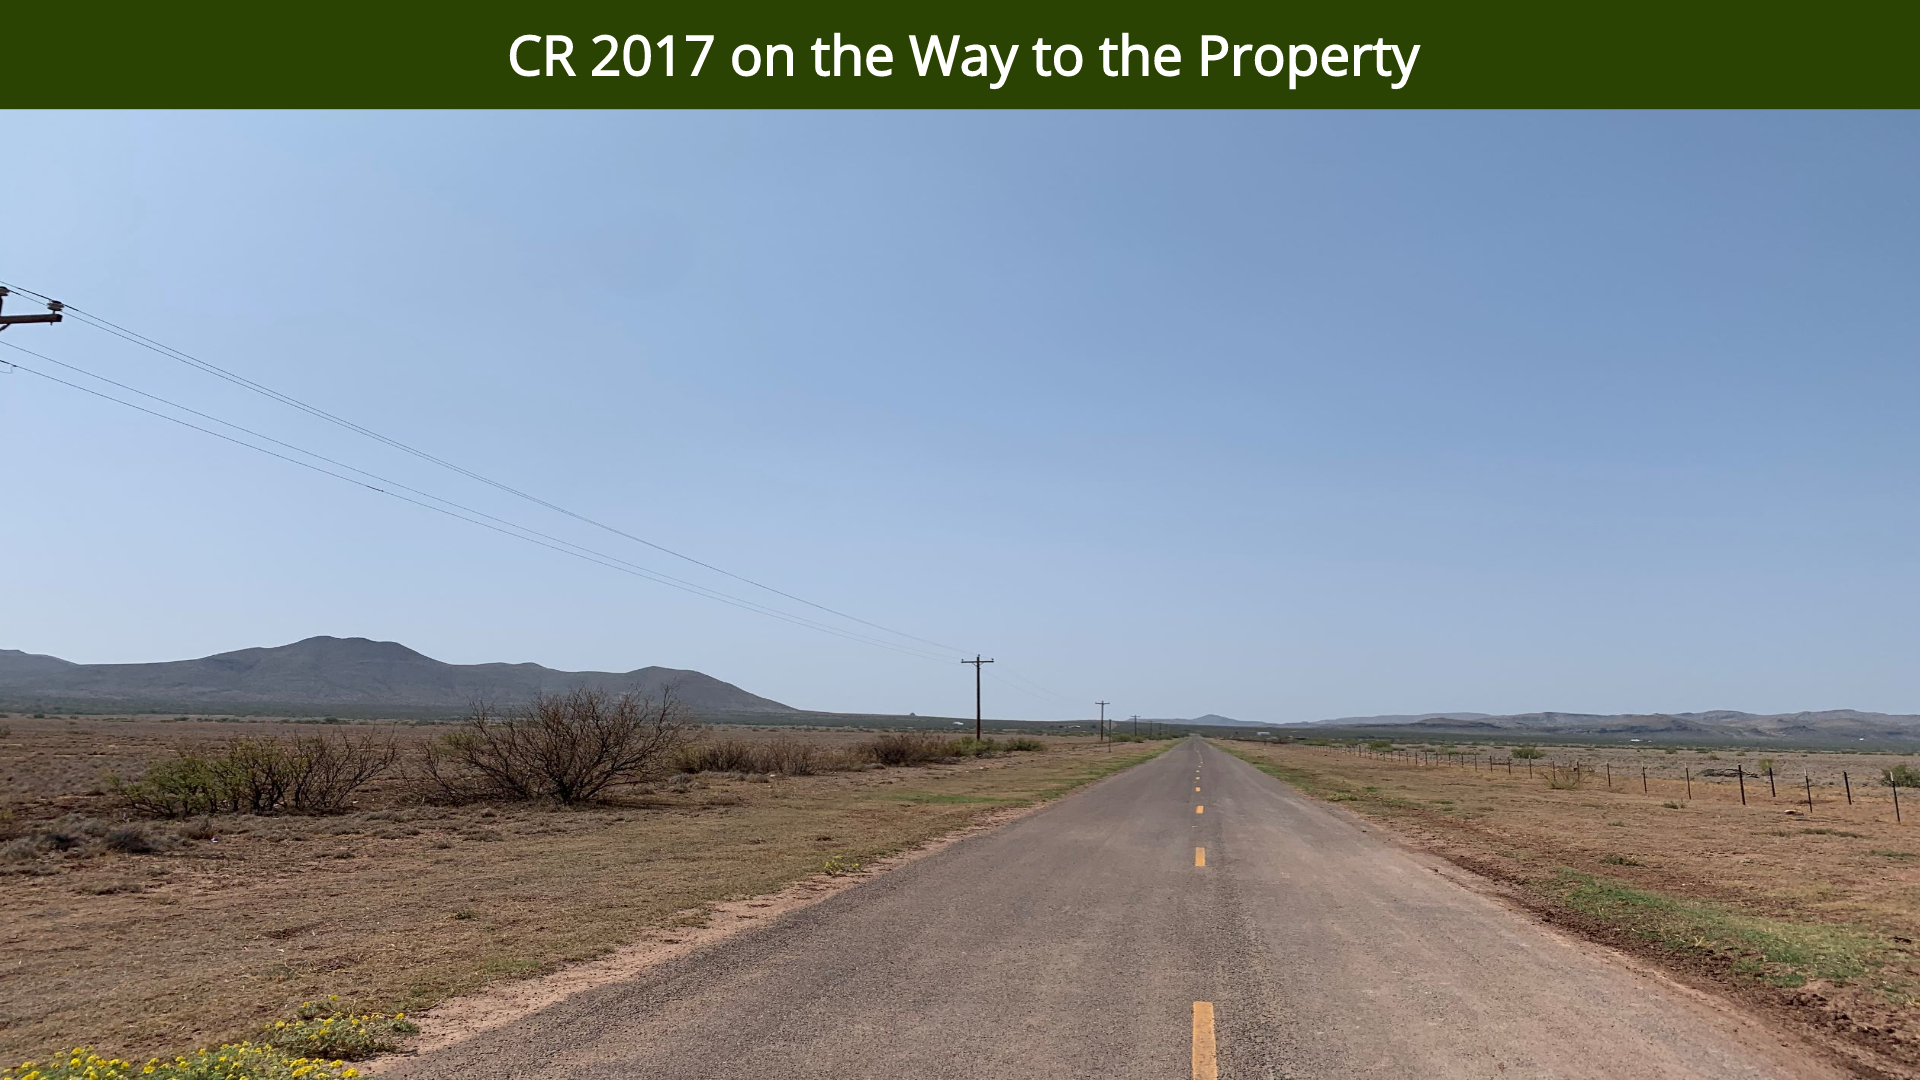 CR 2017 on the Way to the Property